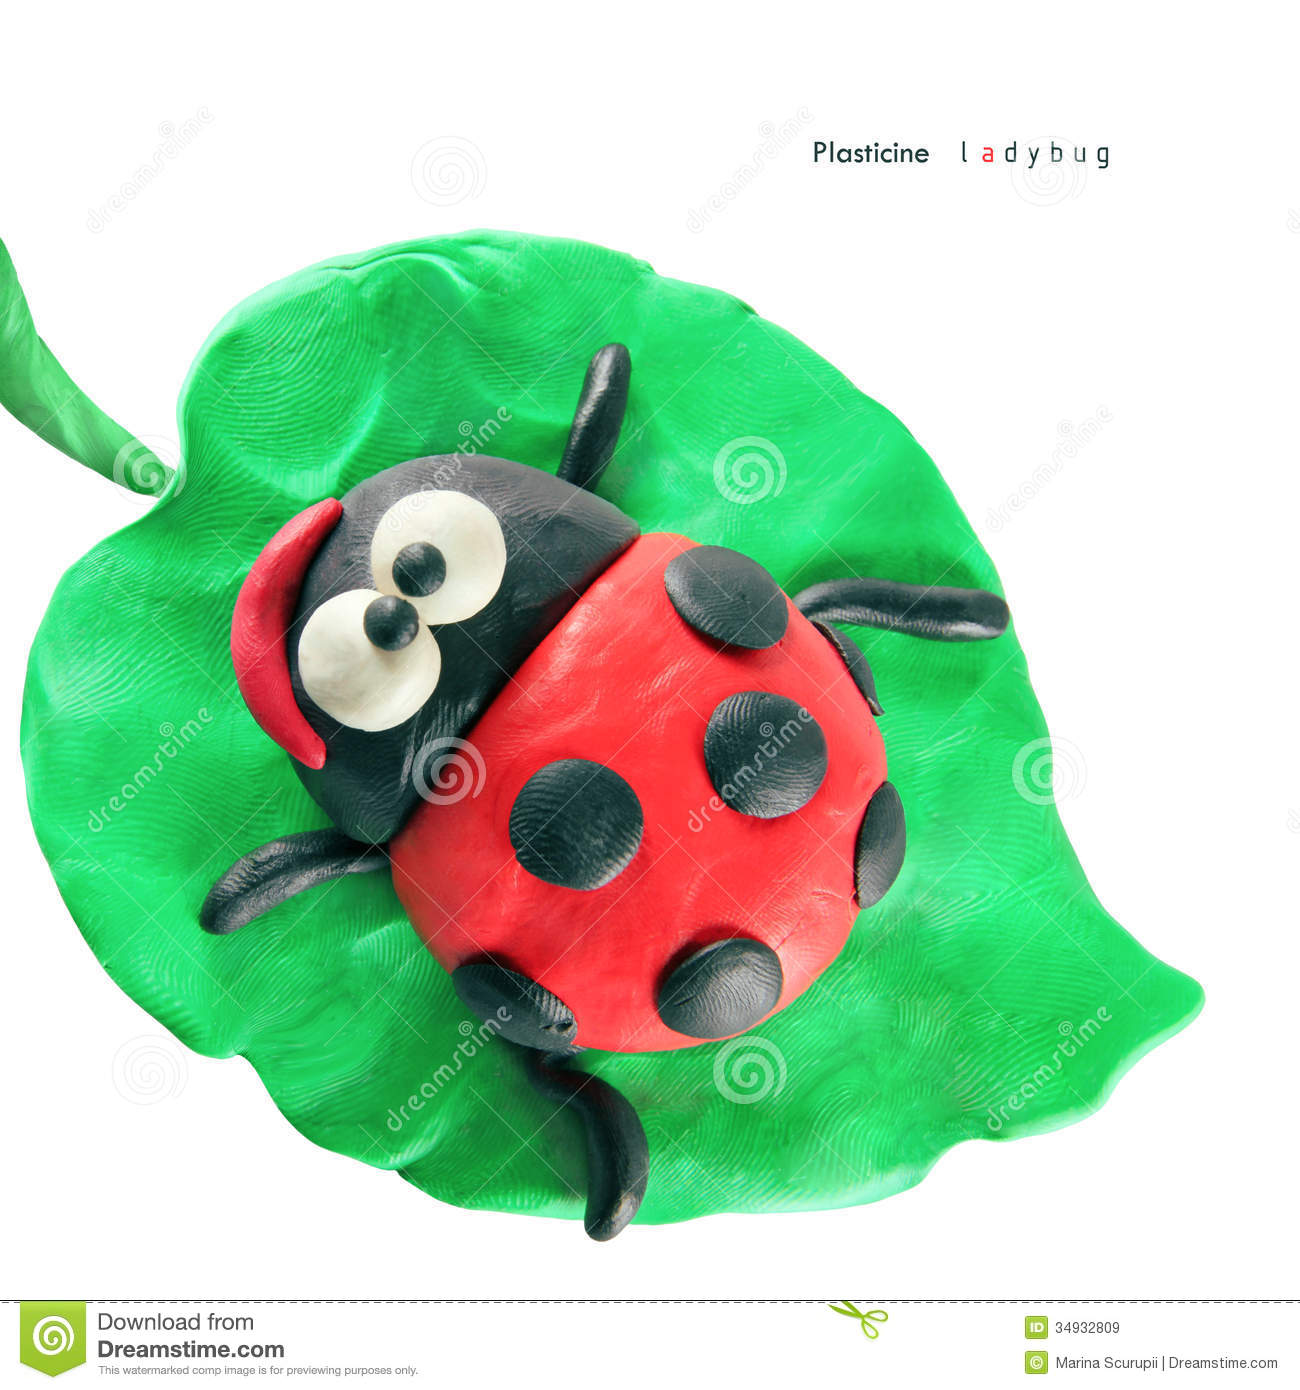 Plasticine Cartoon Ladybug Royalty Free Stock Images